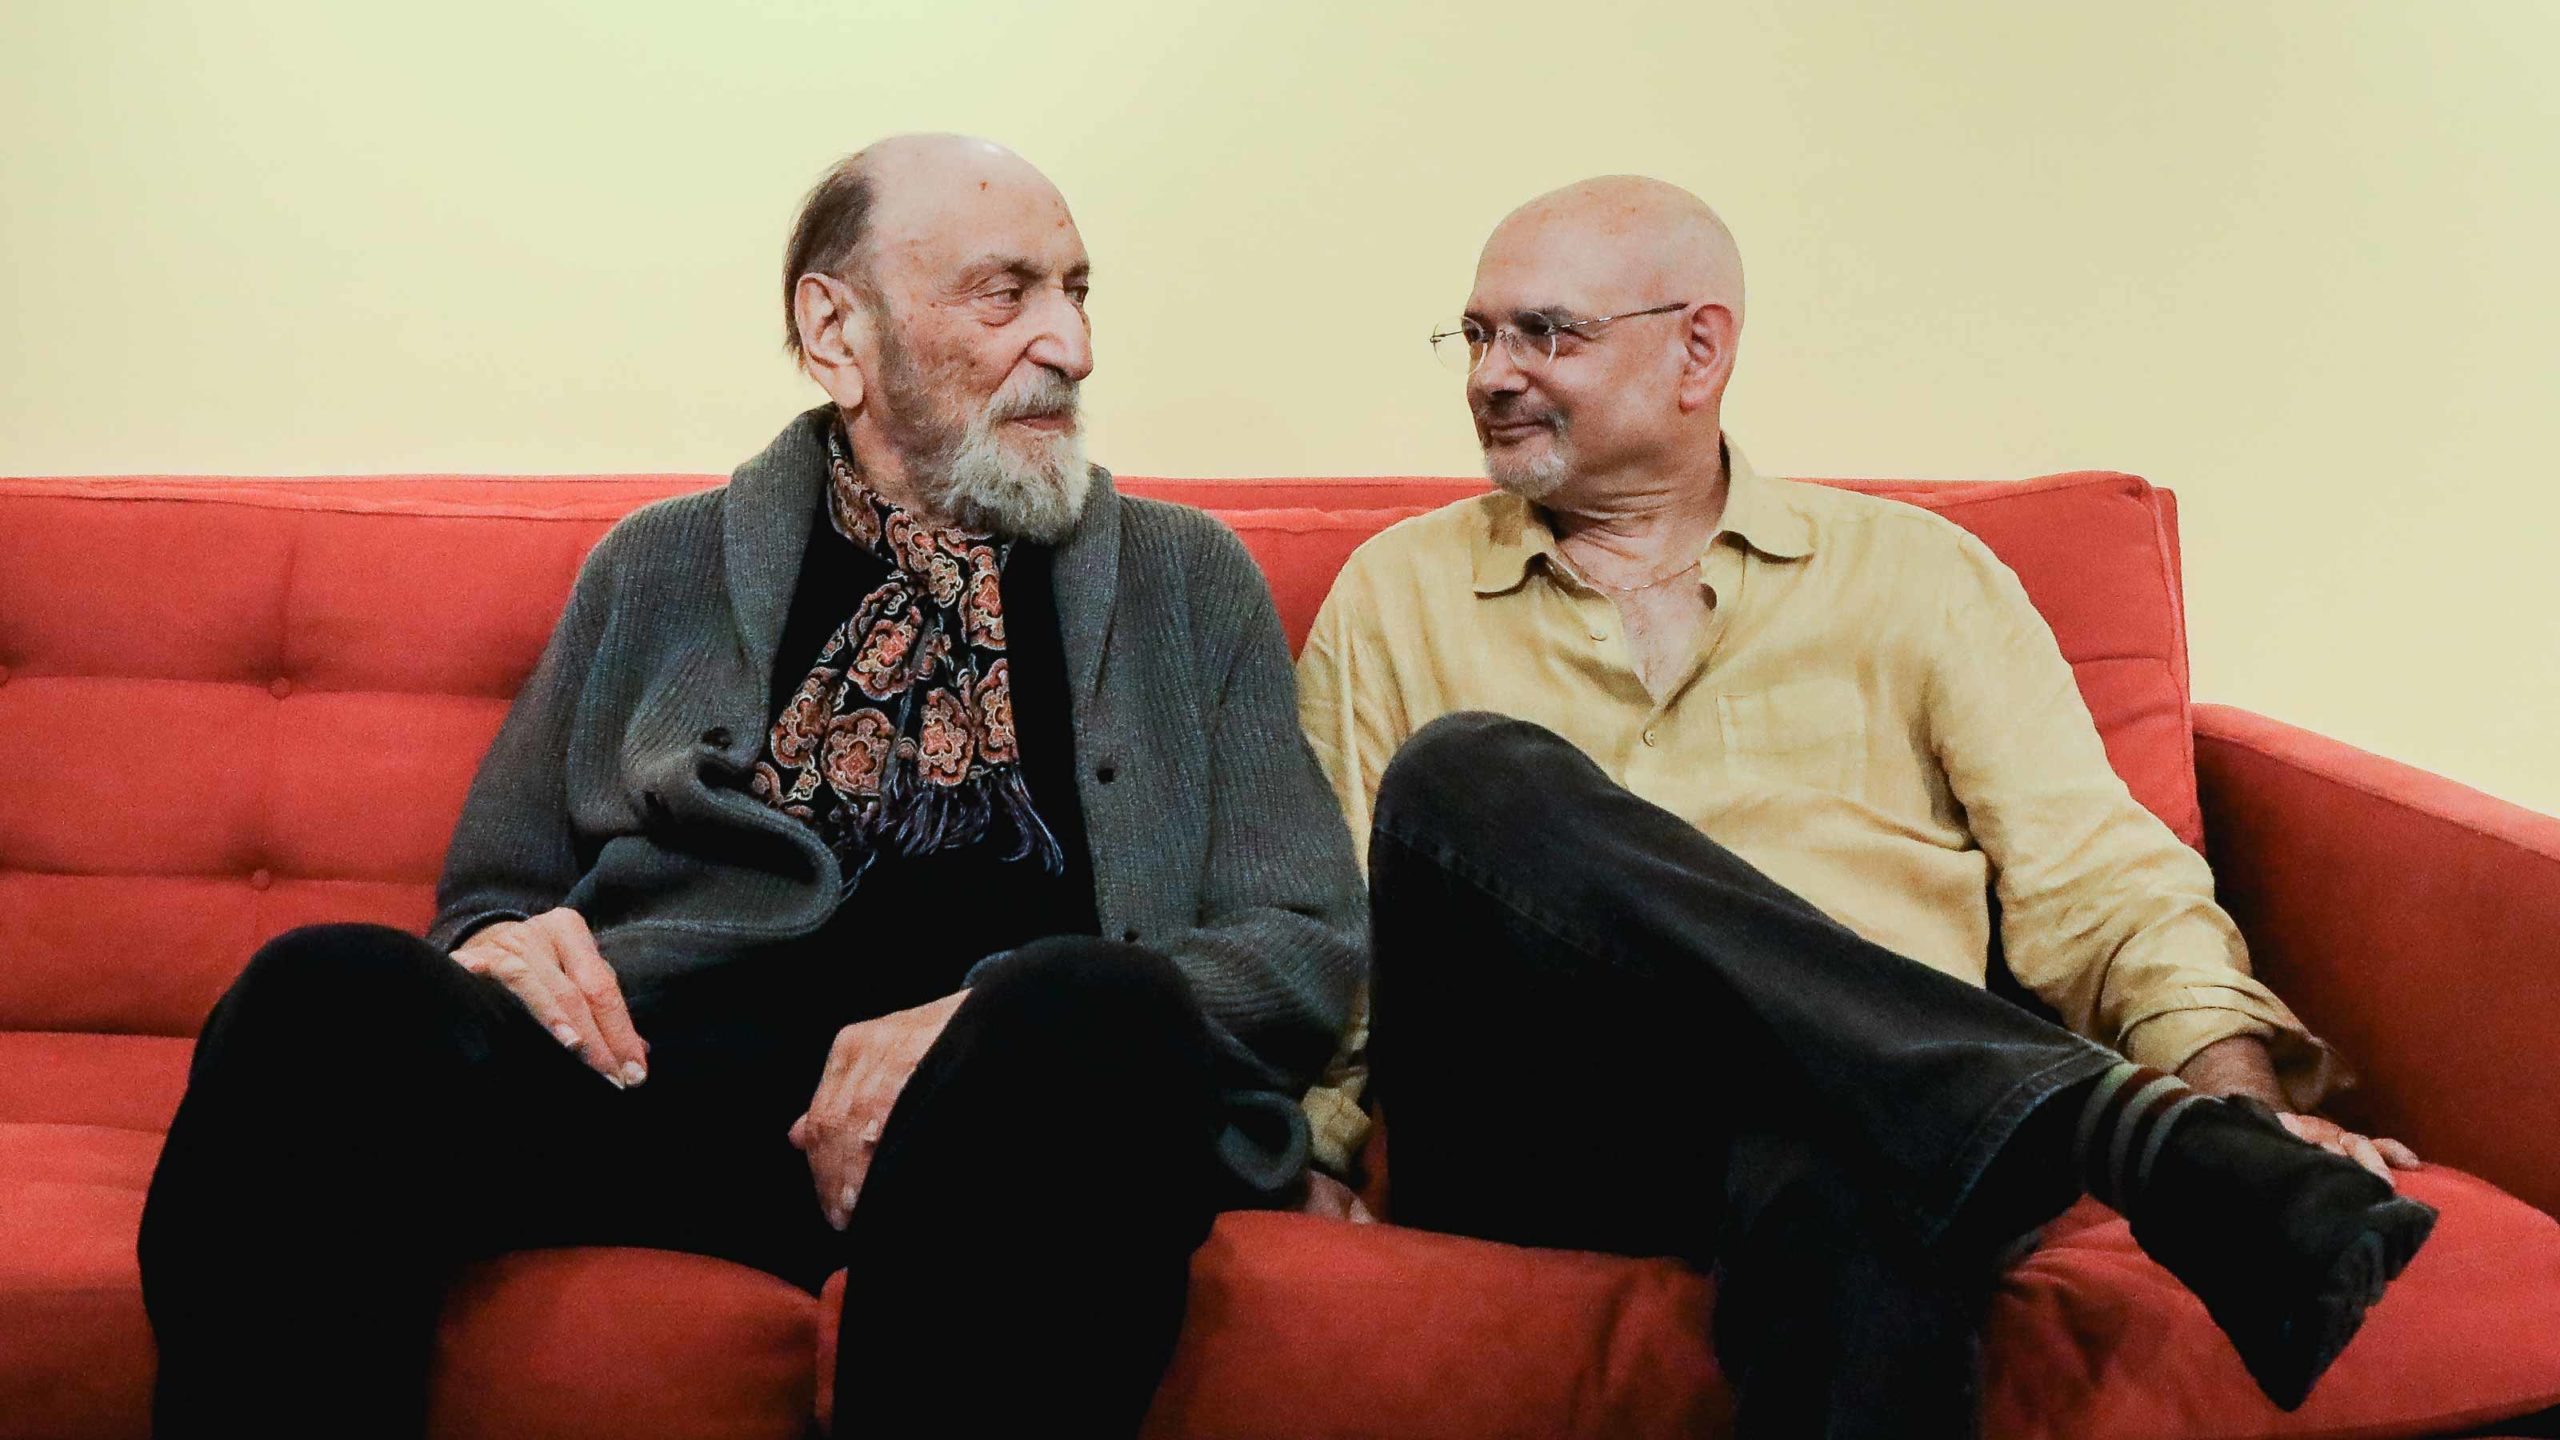 Milton Glaser with Steven Heller